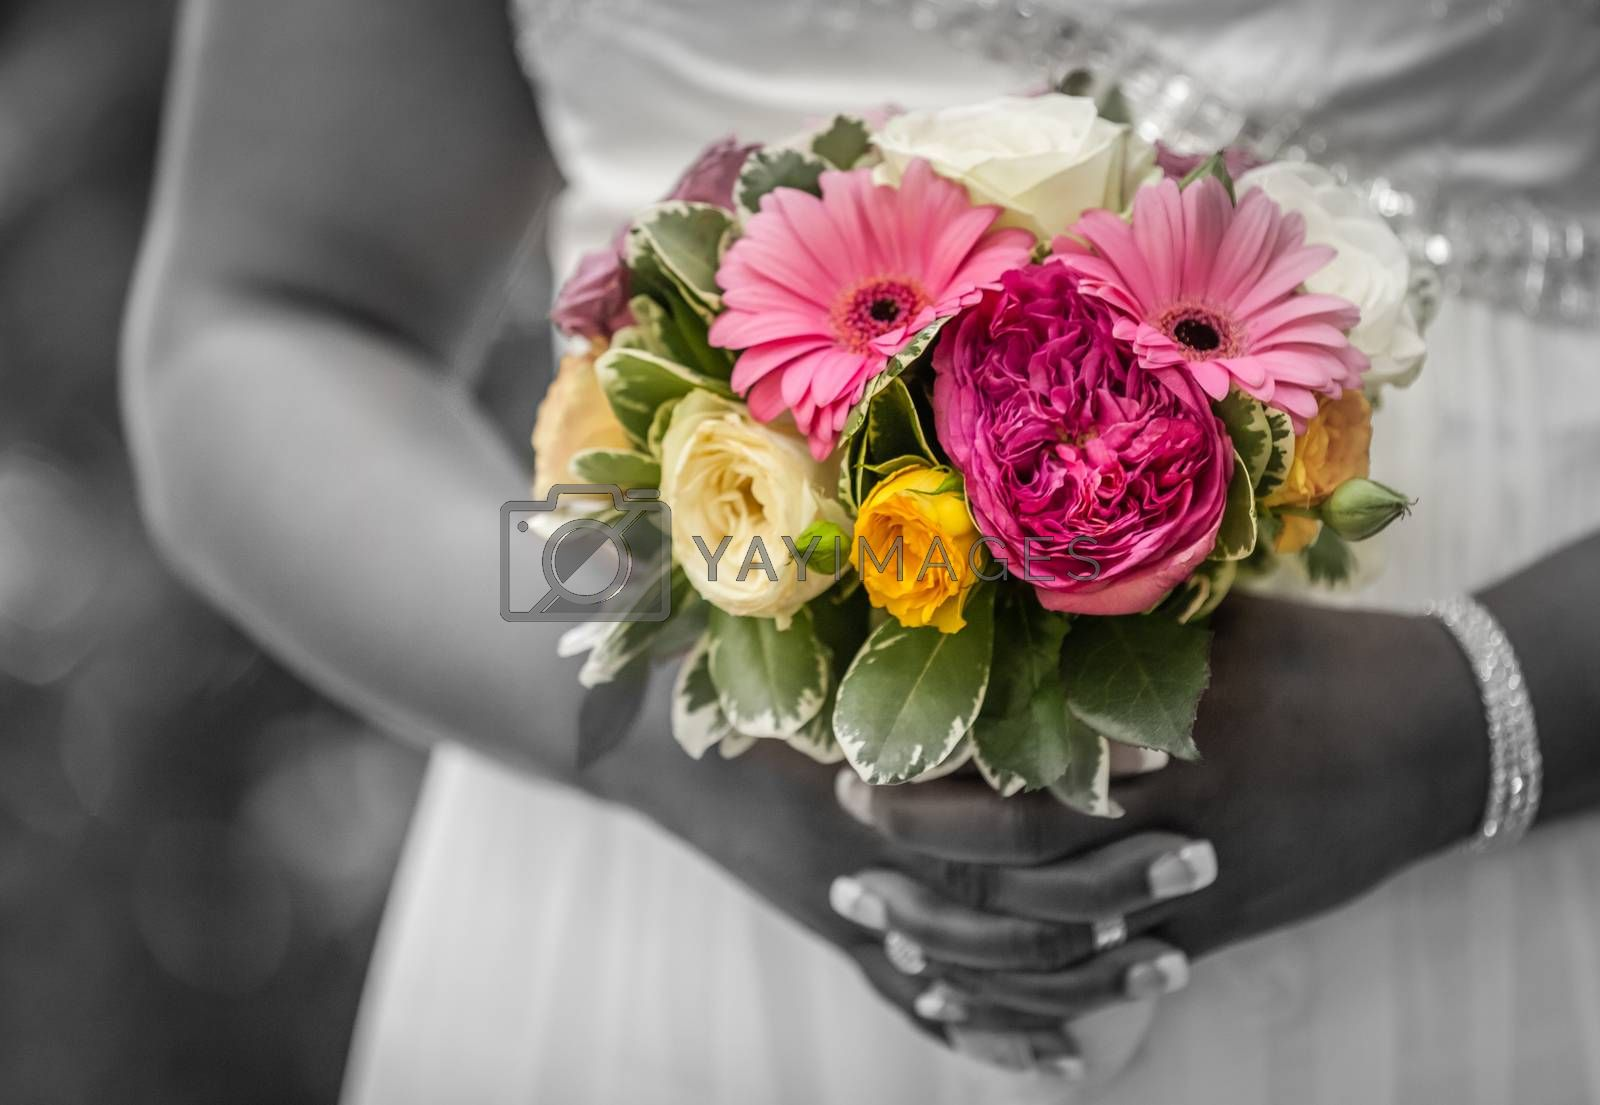 Bride holding a wedding bouquet in her hands